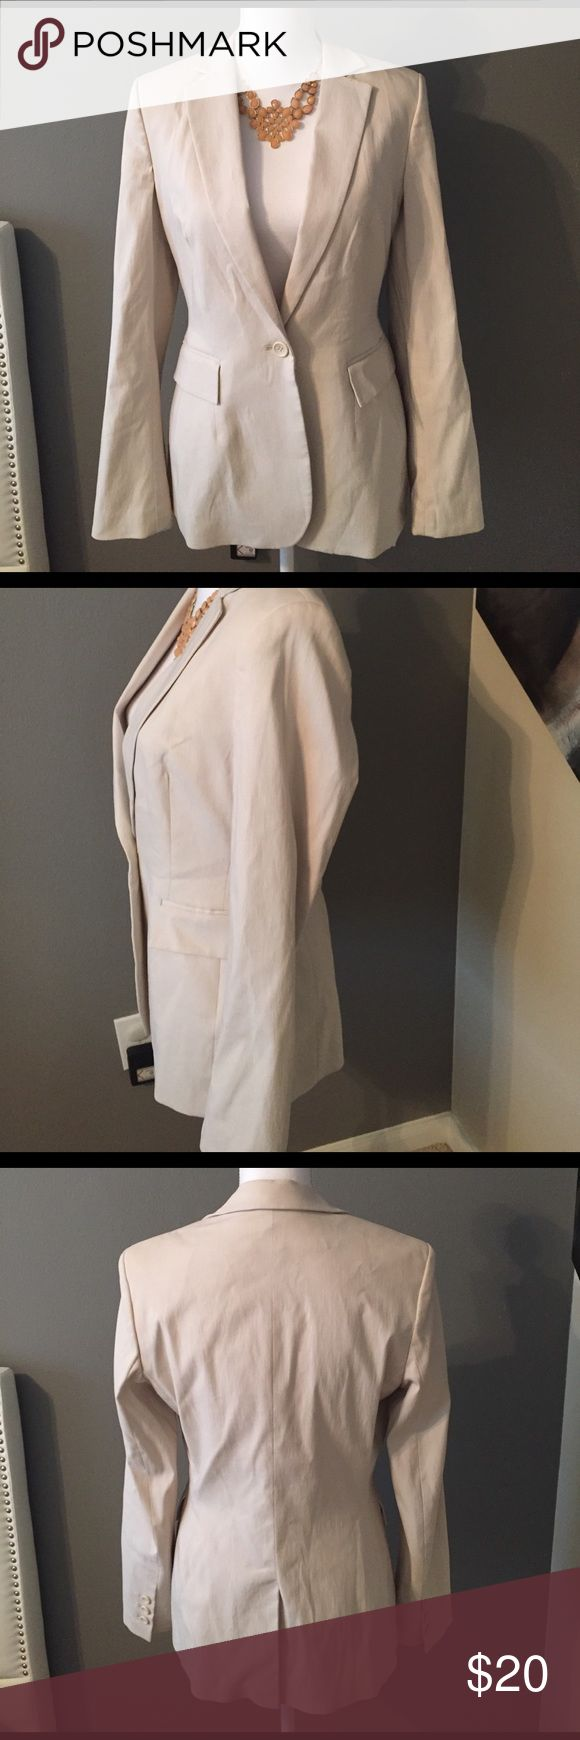 Express Blazer Cream color blazer from Express. It is long and will cover your butt. There may be some smudged that can be easily removed by dry cleaners. Great condition. Made it rayon and nylon. Express Jackets & Coats Blazers